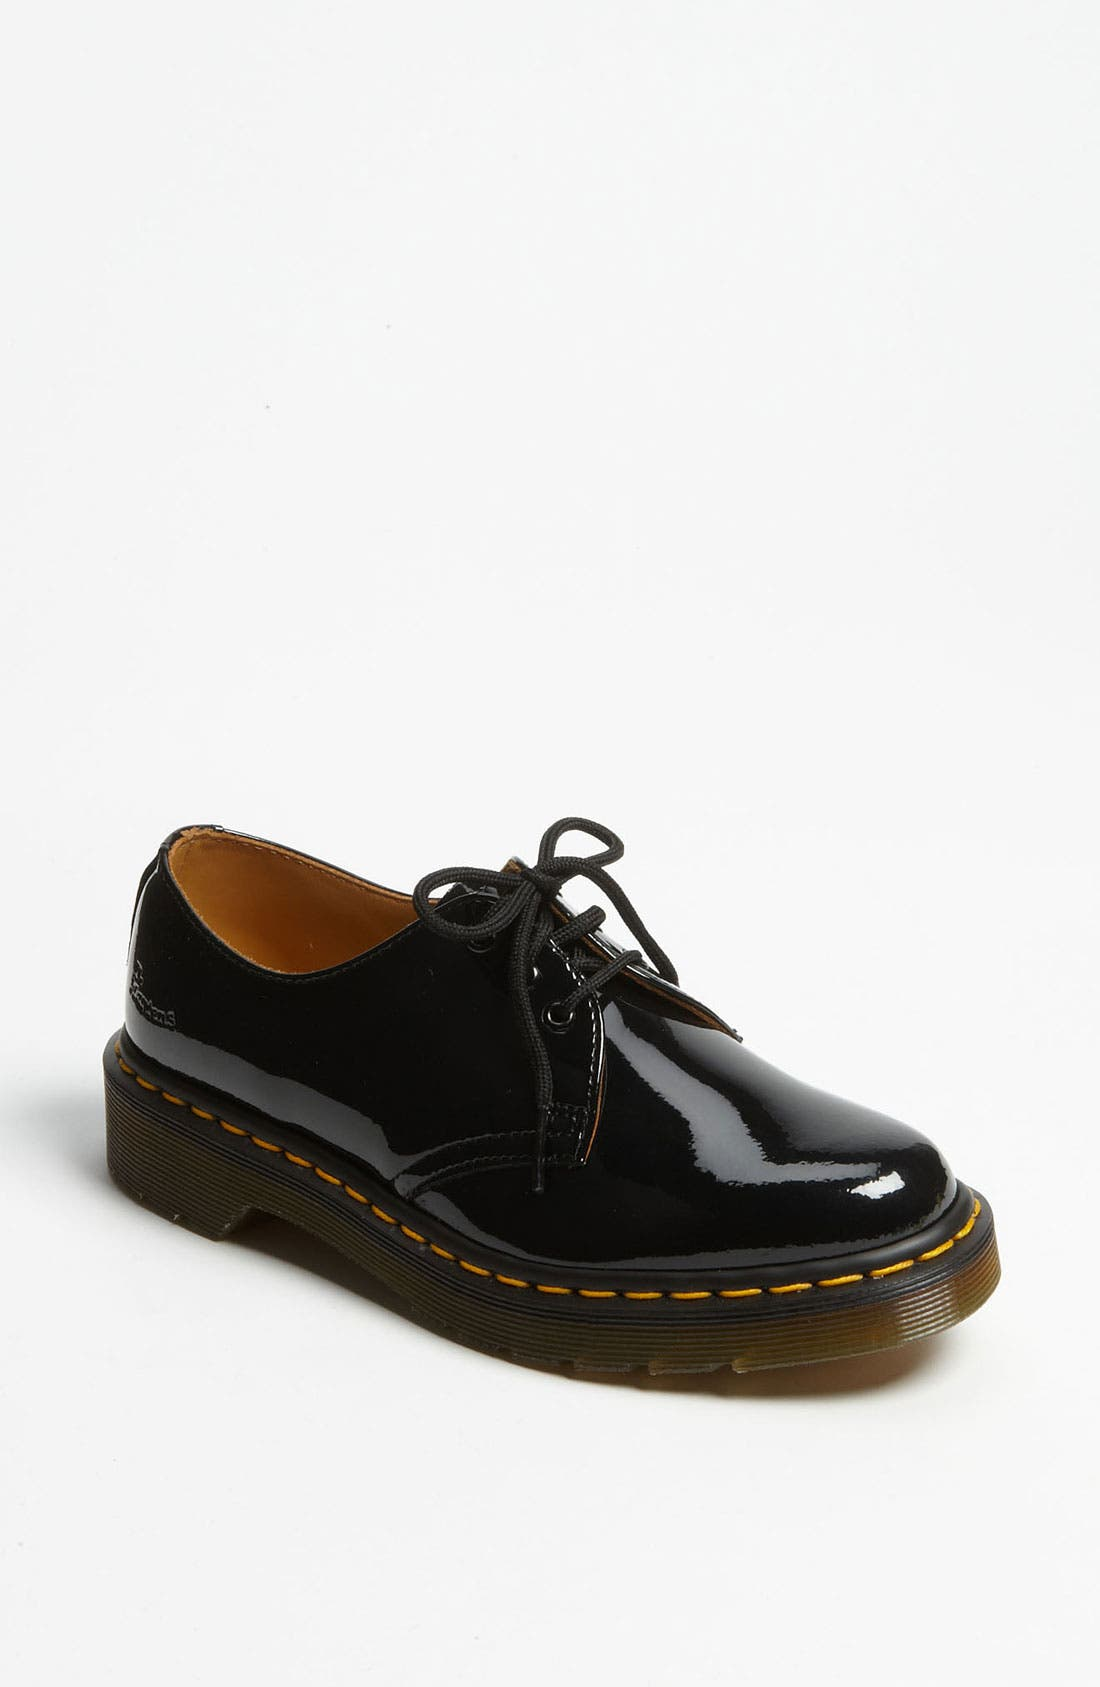 Main Image - Dr. Martens 3-Eye Oxford